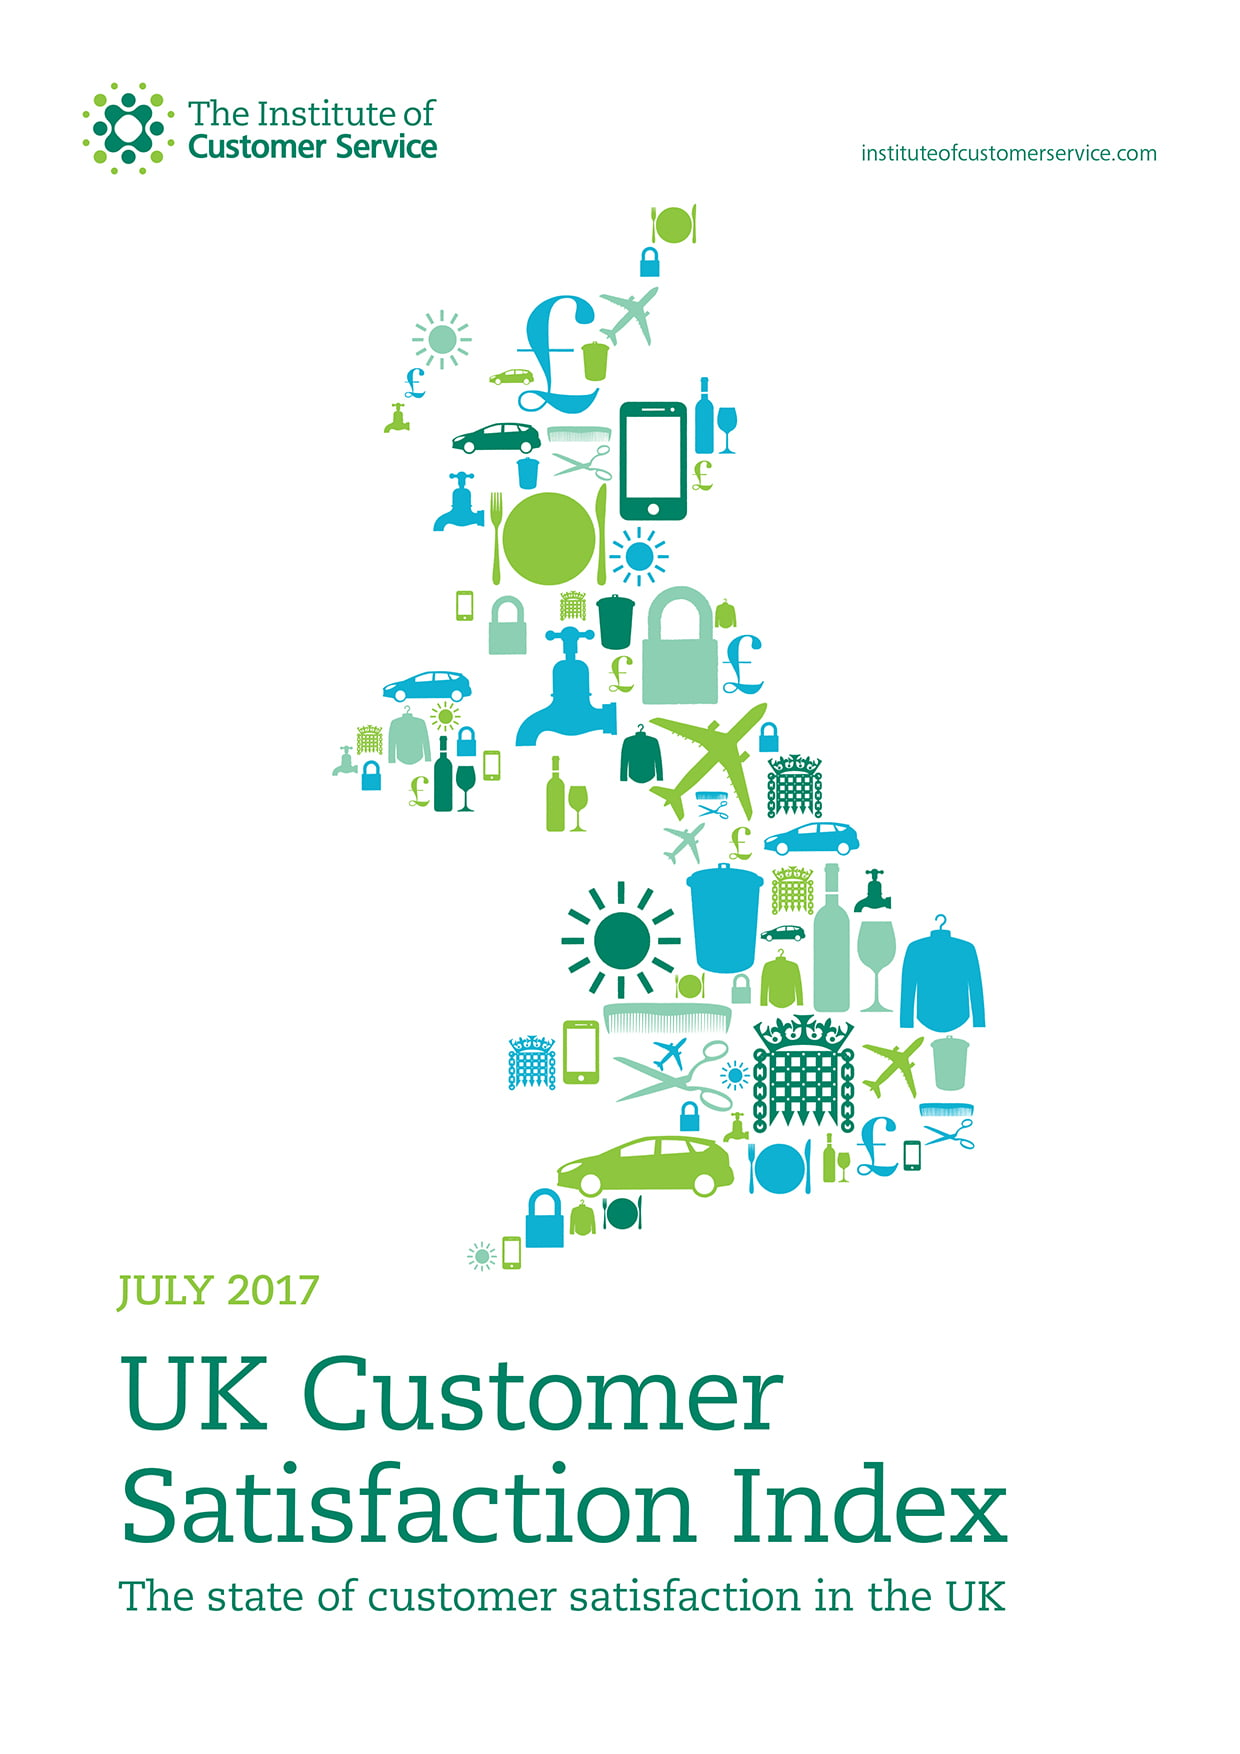 UKCSI: The State Of Customer Satisfaction In The UK – July 2017